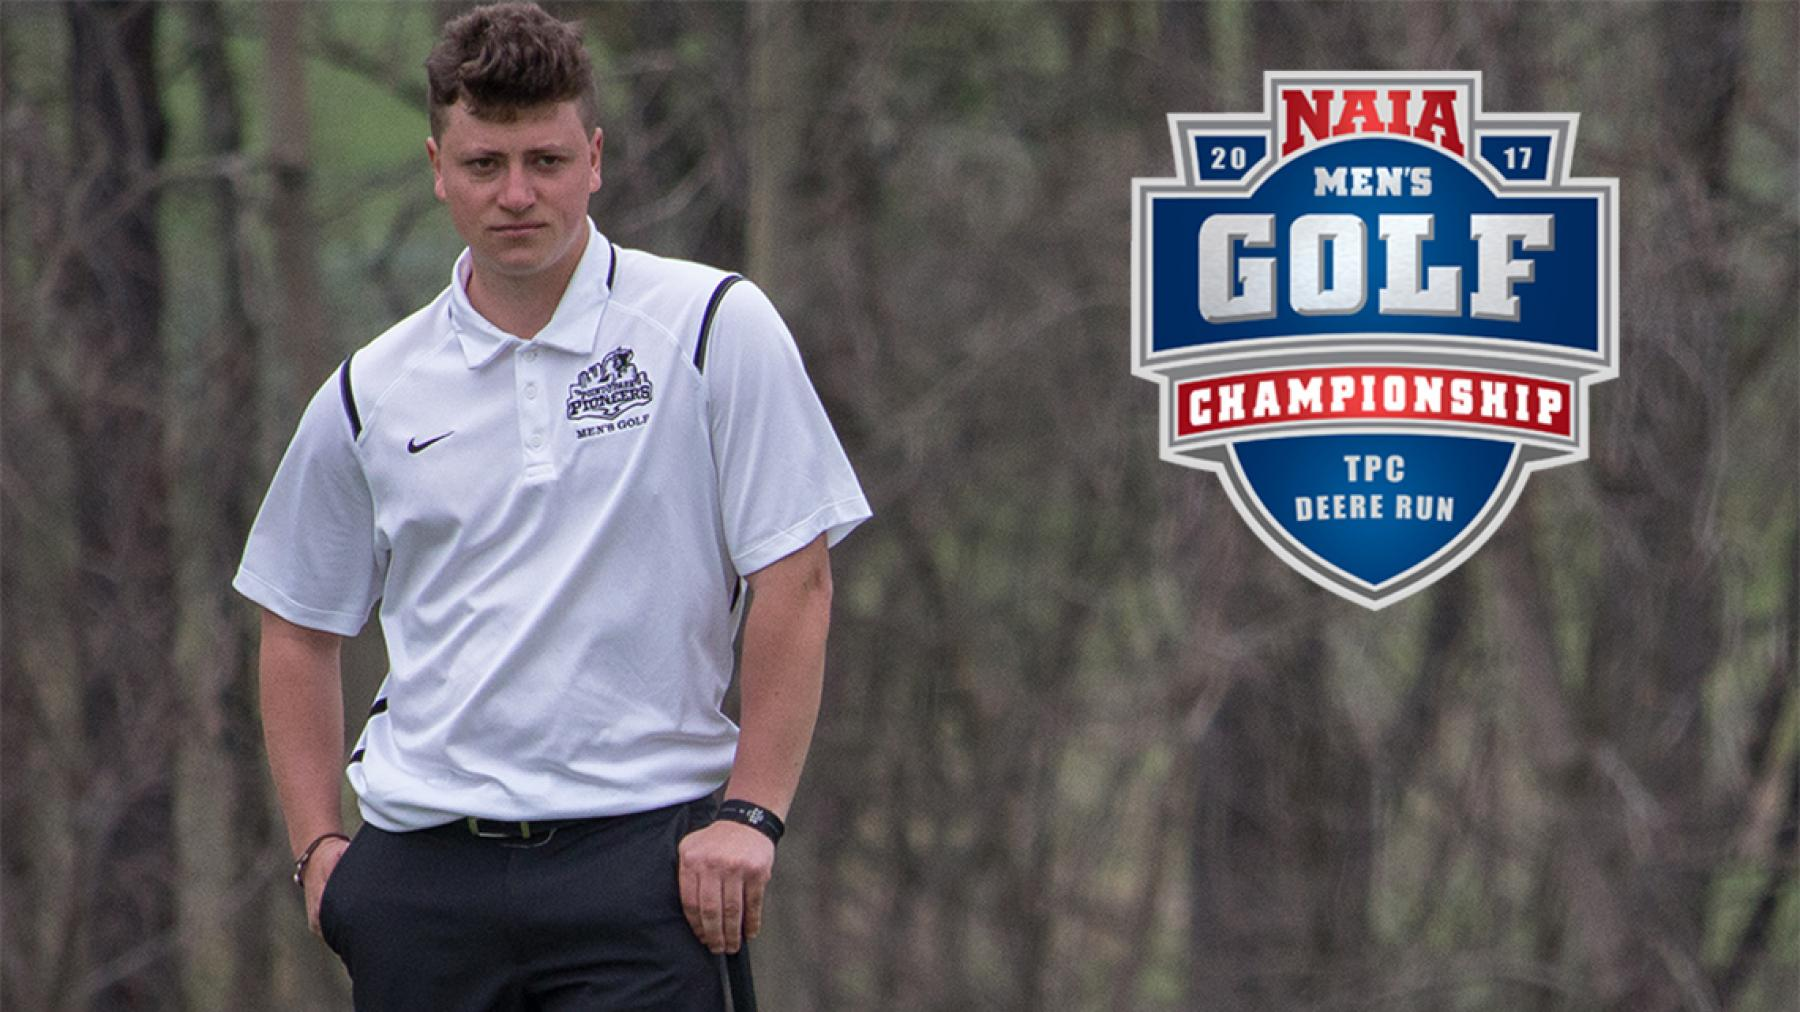 Point Park learns Tee Times, Pairings for Rd 1 & 2 of NAIA Men's Golf Championship